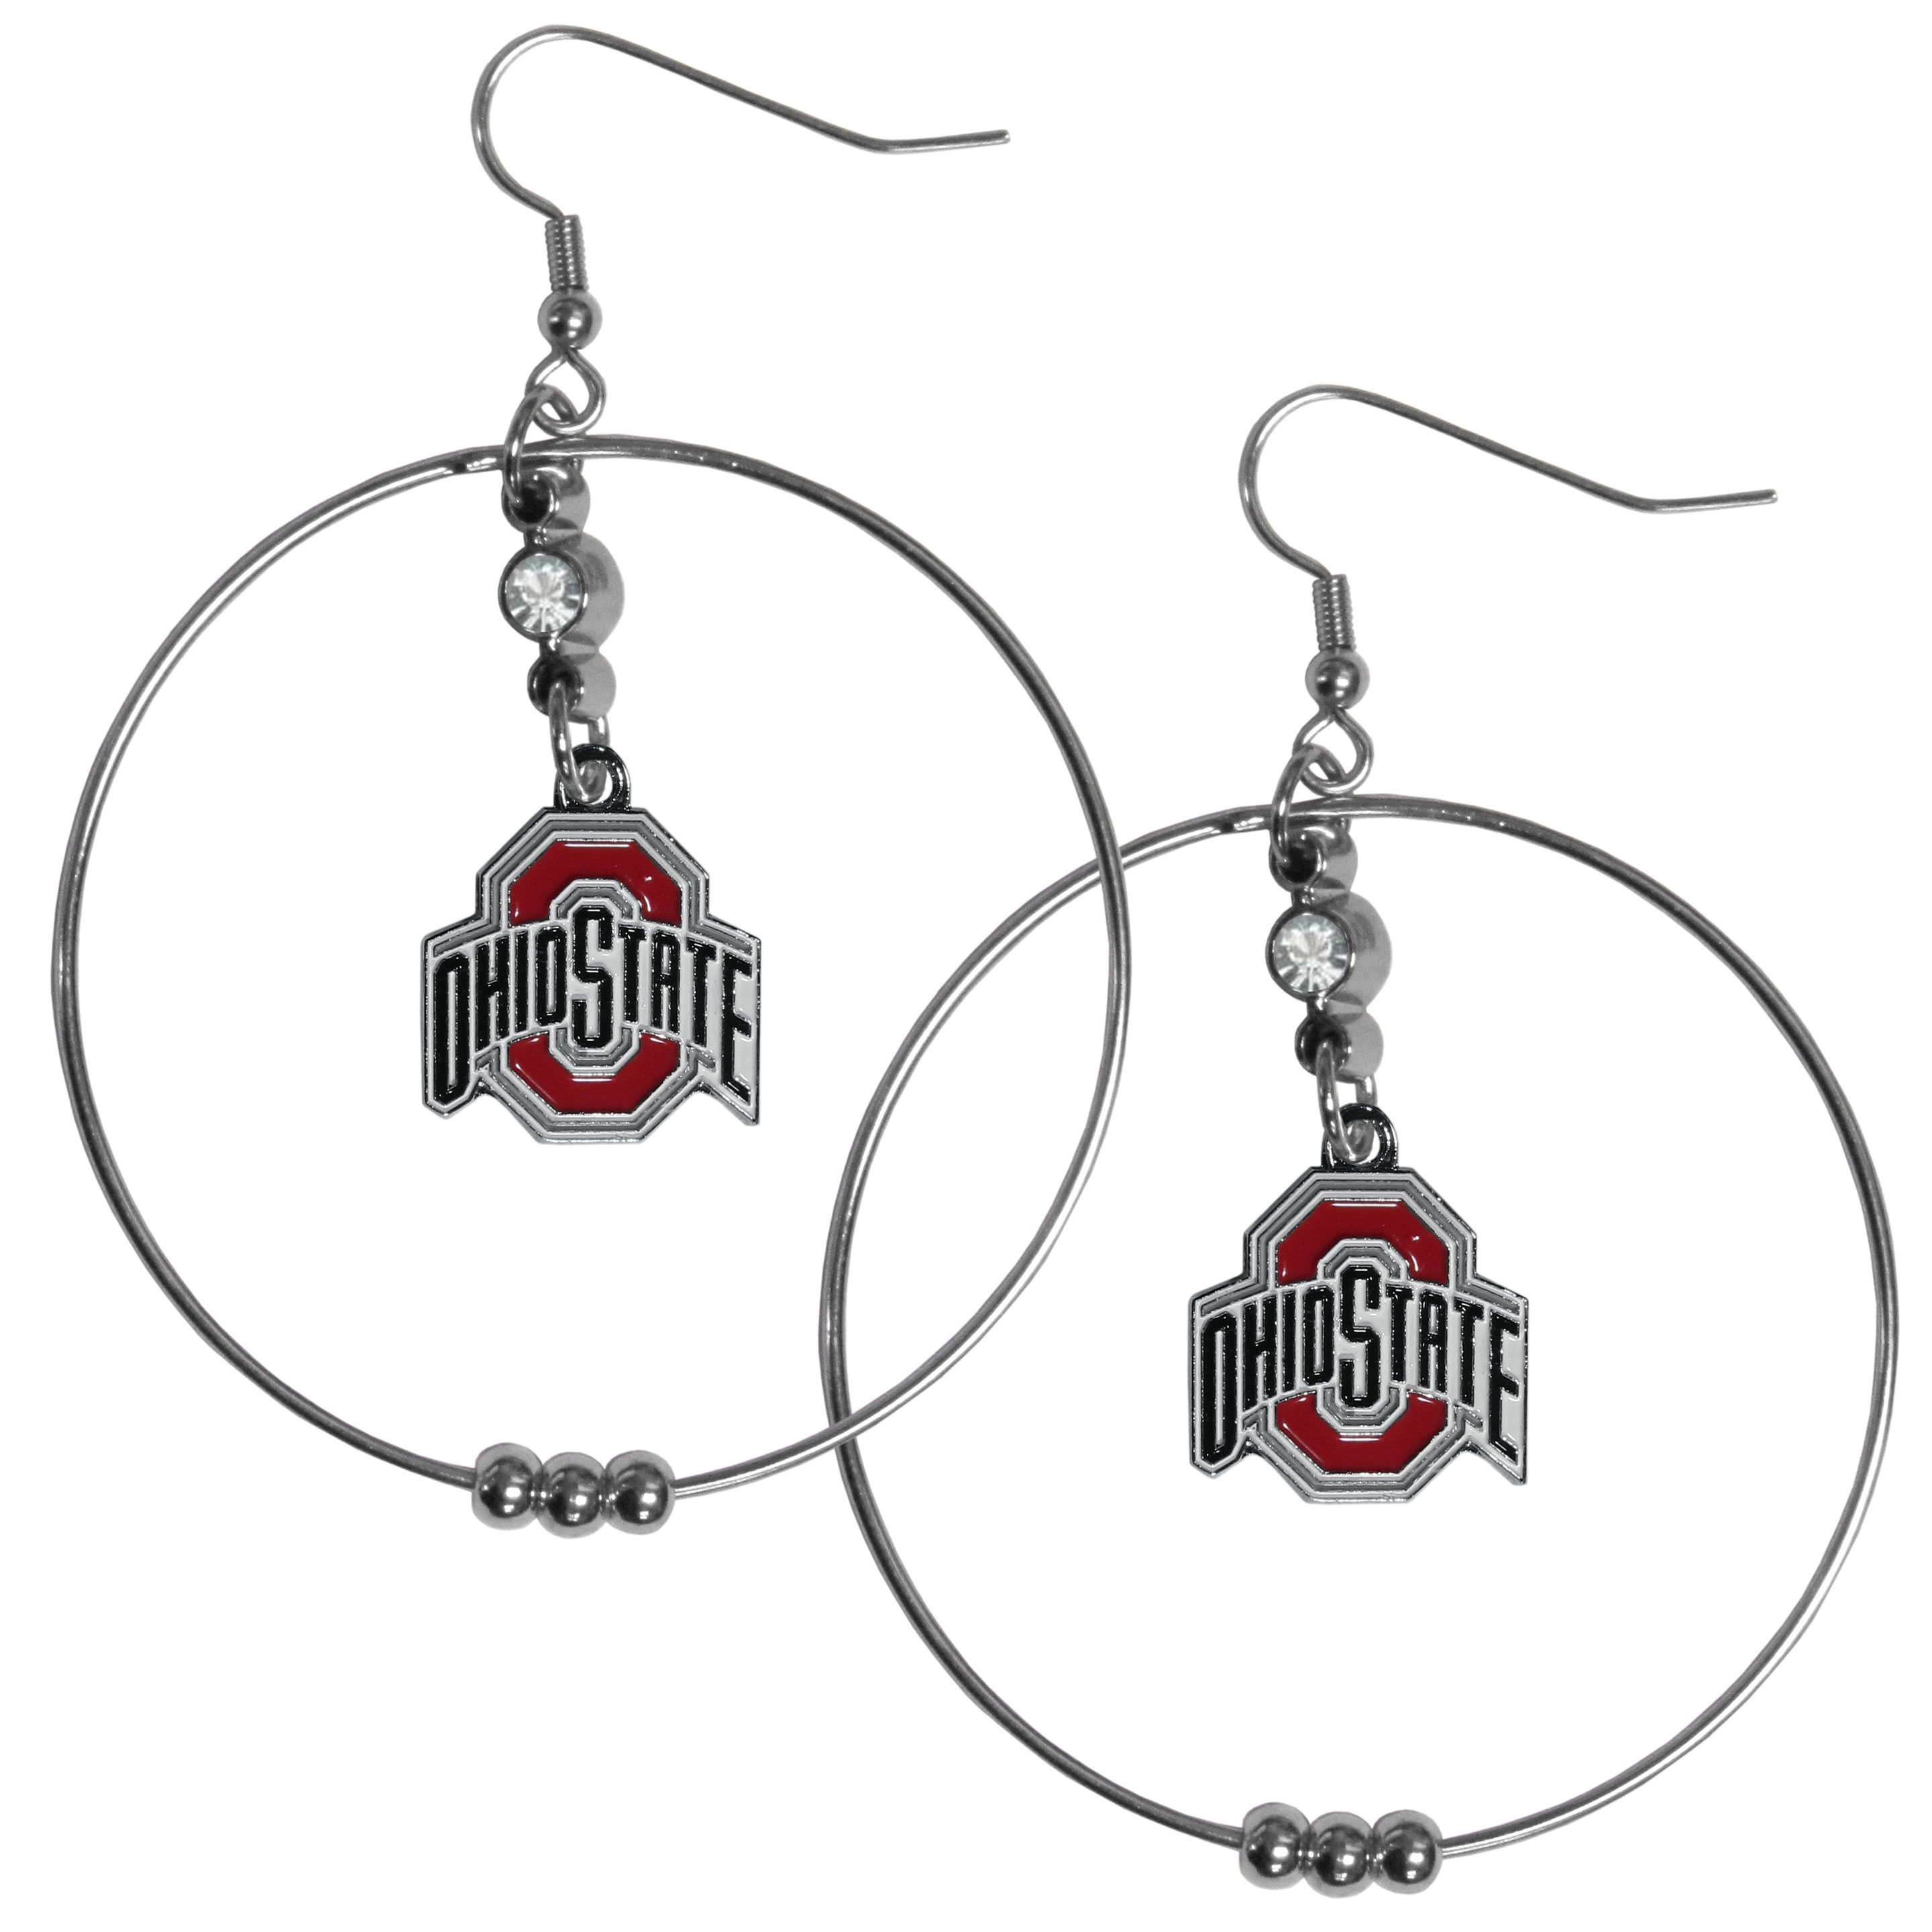 Ohio St. Buckeyes 2 Inch Hoop Earrings - Our large hoop earrings have a fully cast and enameled Ohio St. Buckeyes charm with enameled detail and a high polish nickel free chrome finish and rhinestone access. Hypoallergenic fishhook posts.